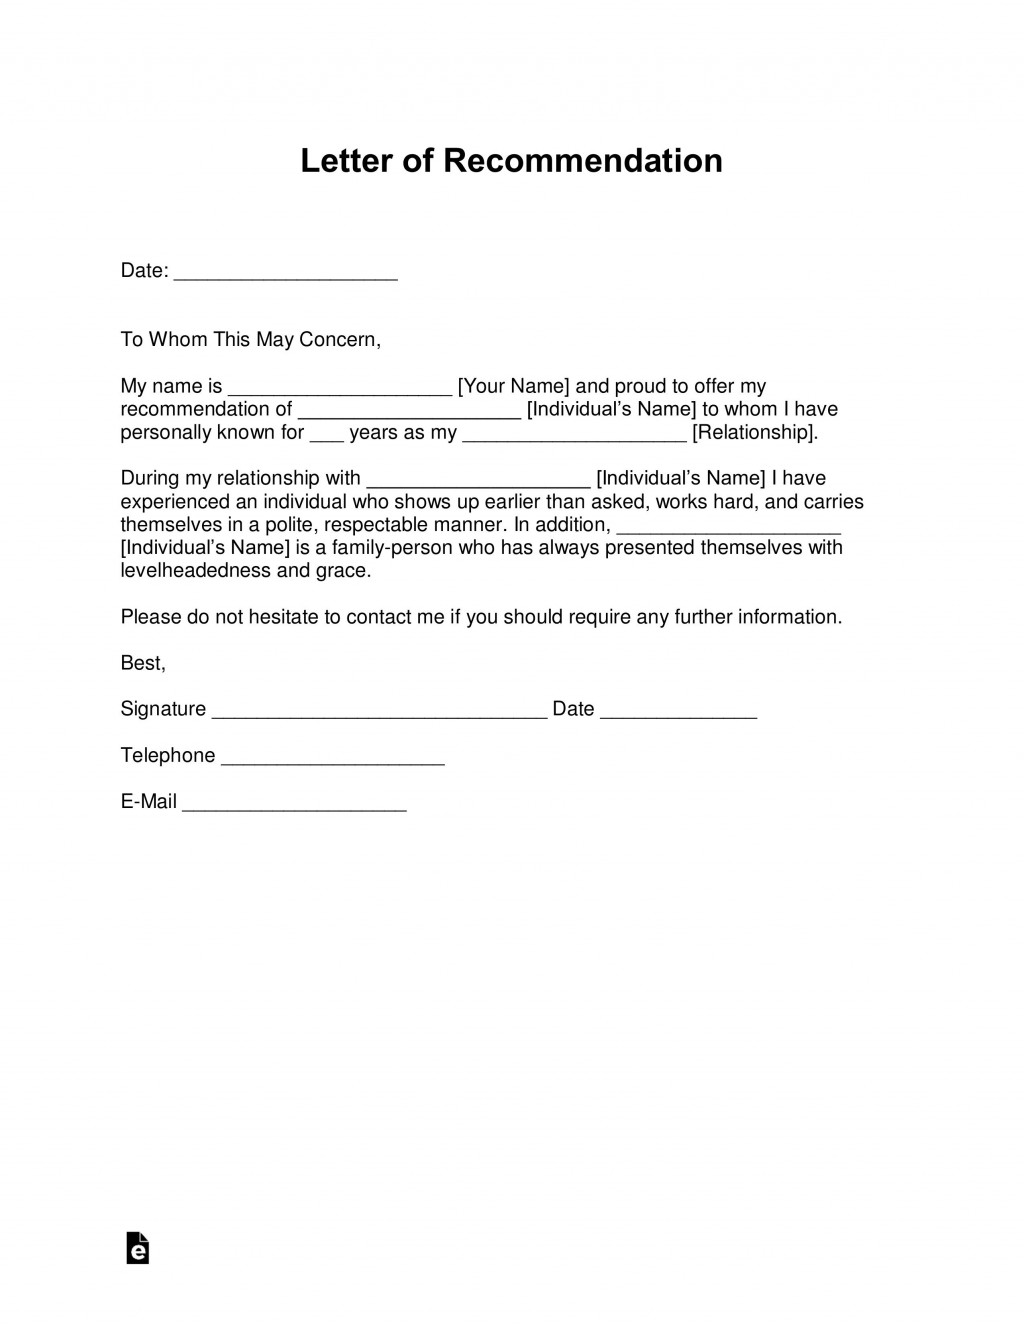 008 Outstanding Letter Of Recomendation Template Picture  Reference For Employment Sample Recommendation Teacher Student From EmployerLarge